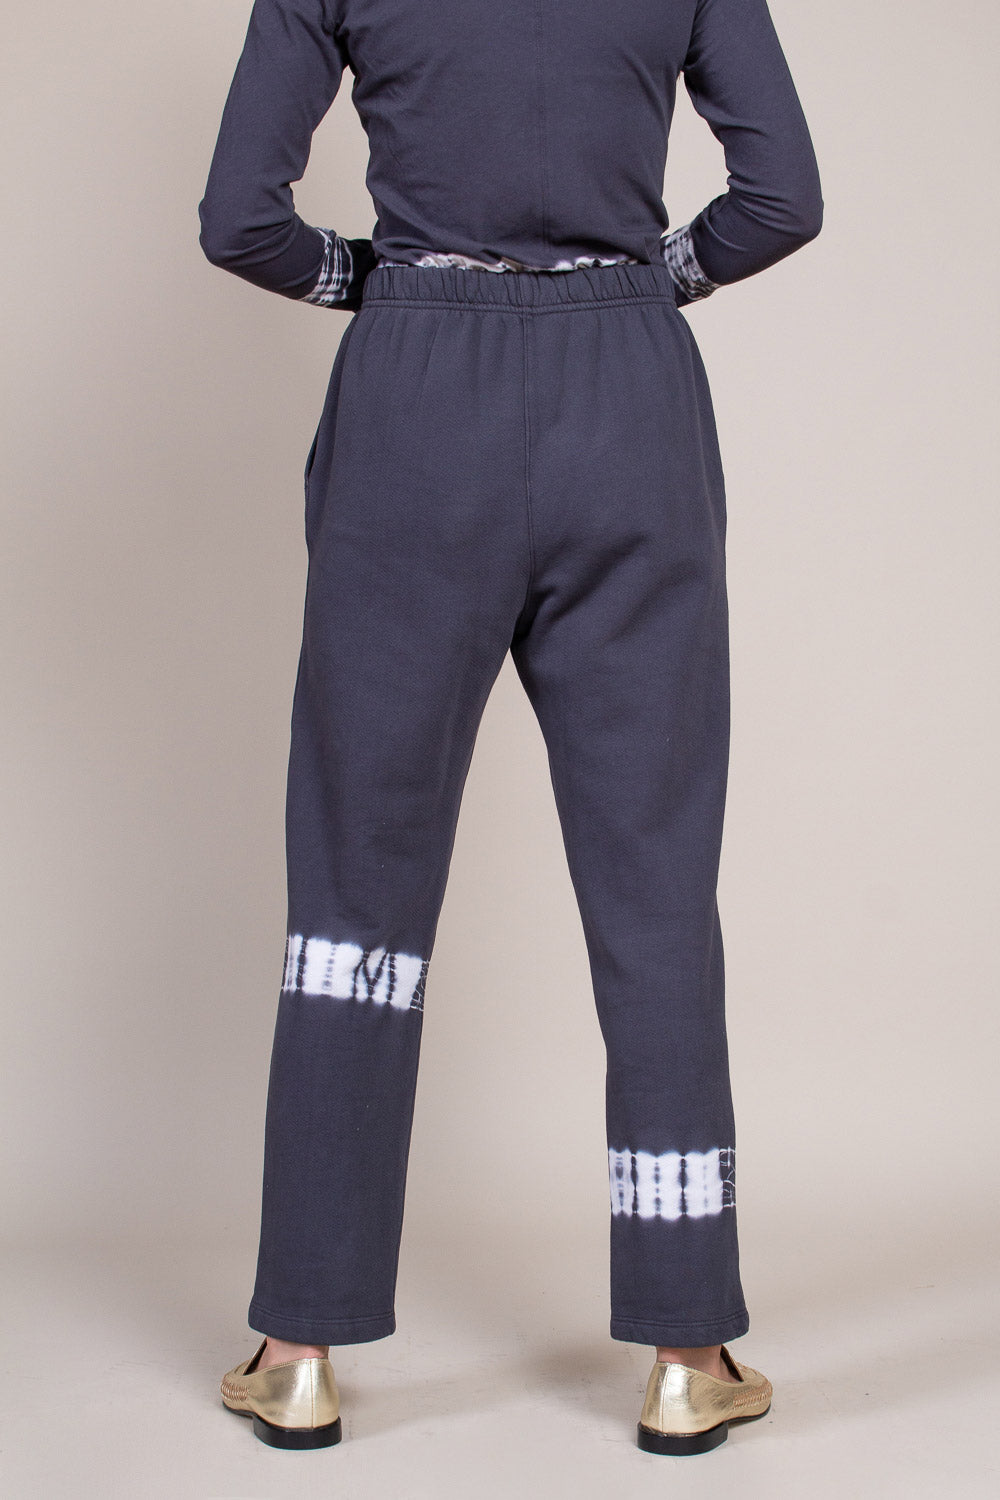 Ankle Pant in Charcoal Tie Dye